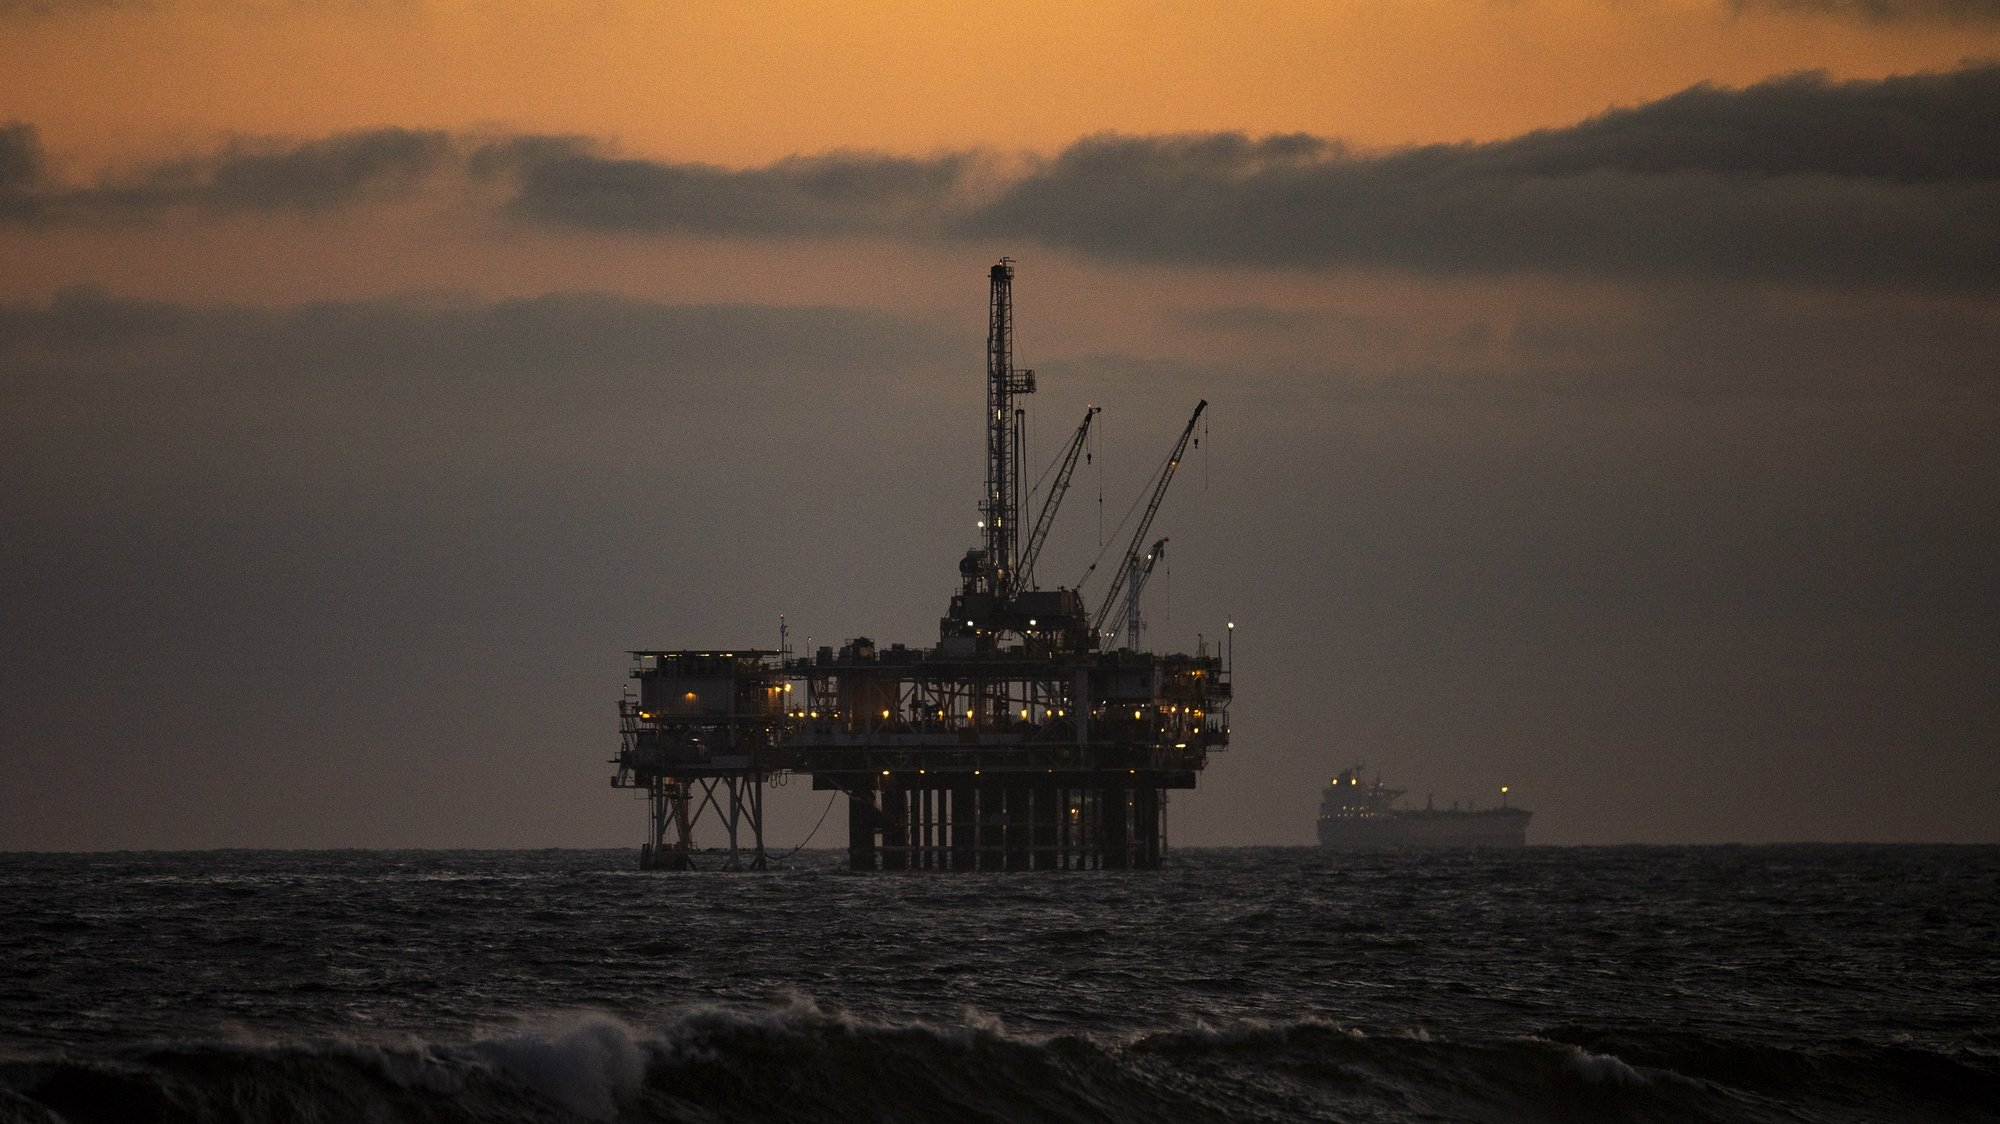 epa08416024 An oil rig sits off the shore at sunset in Huntington Beach, California, 11 May 2020. California begane it's Phase 2 of reopening, after coronavirus restrictions, on 08 May 2020.  EPA/ETIENNE LAURENT